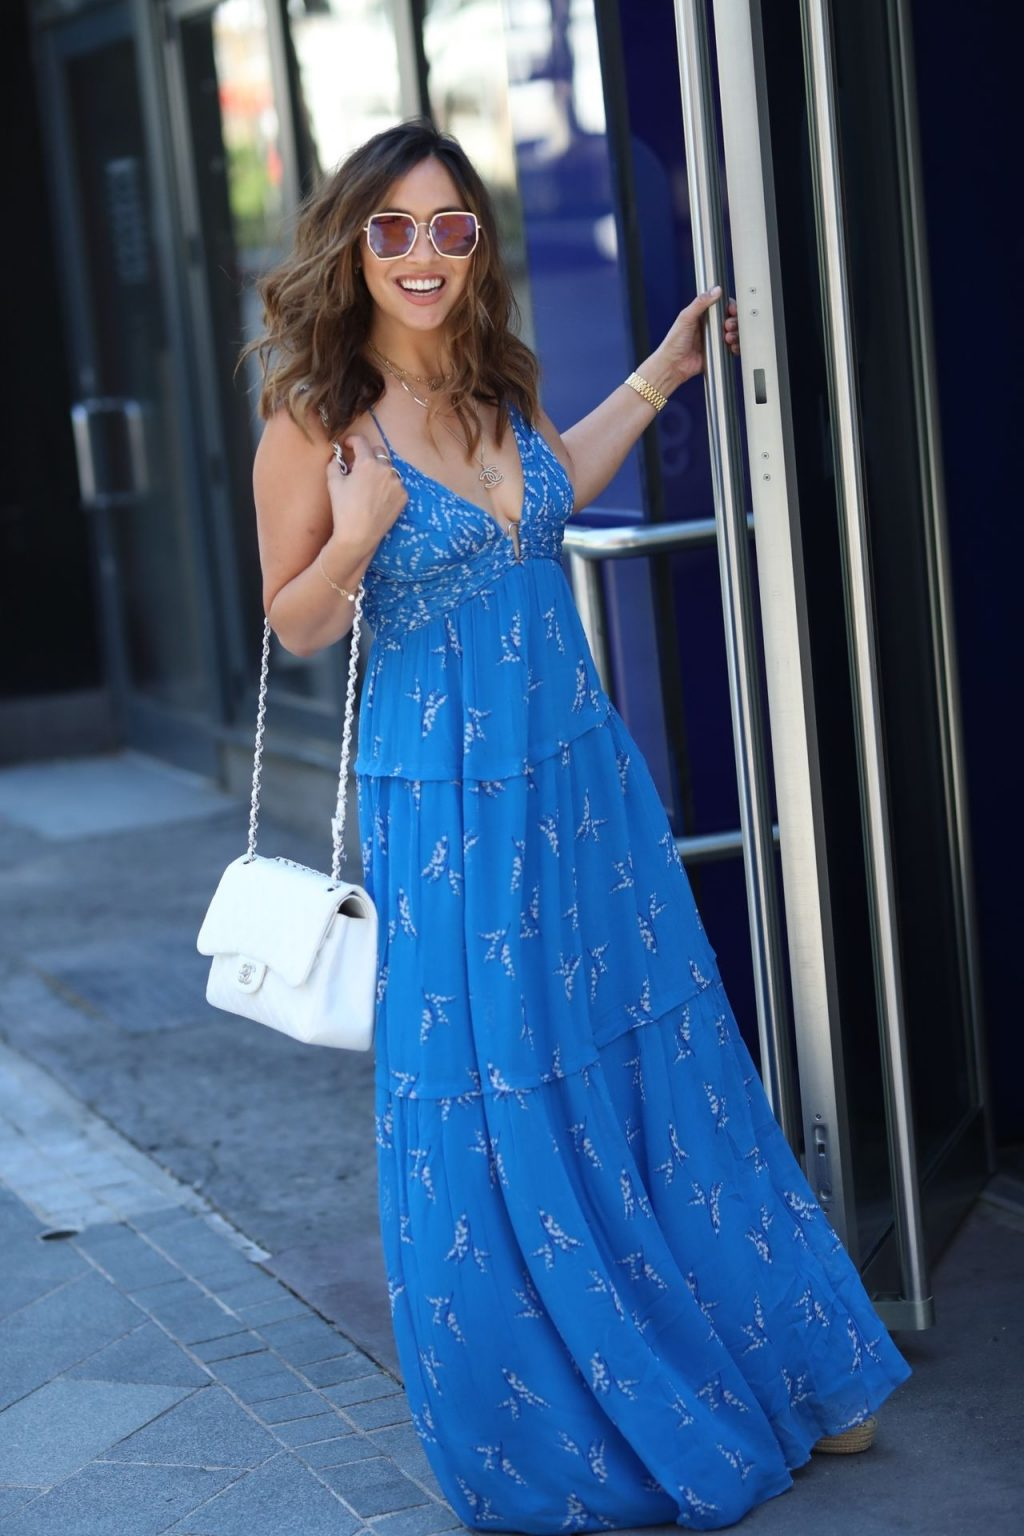 Myleene Klass Stuns in a Blue Dress in London (46 Photos)